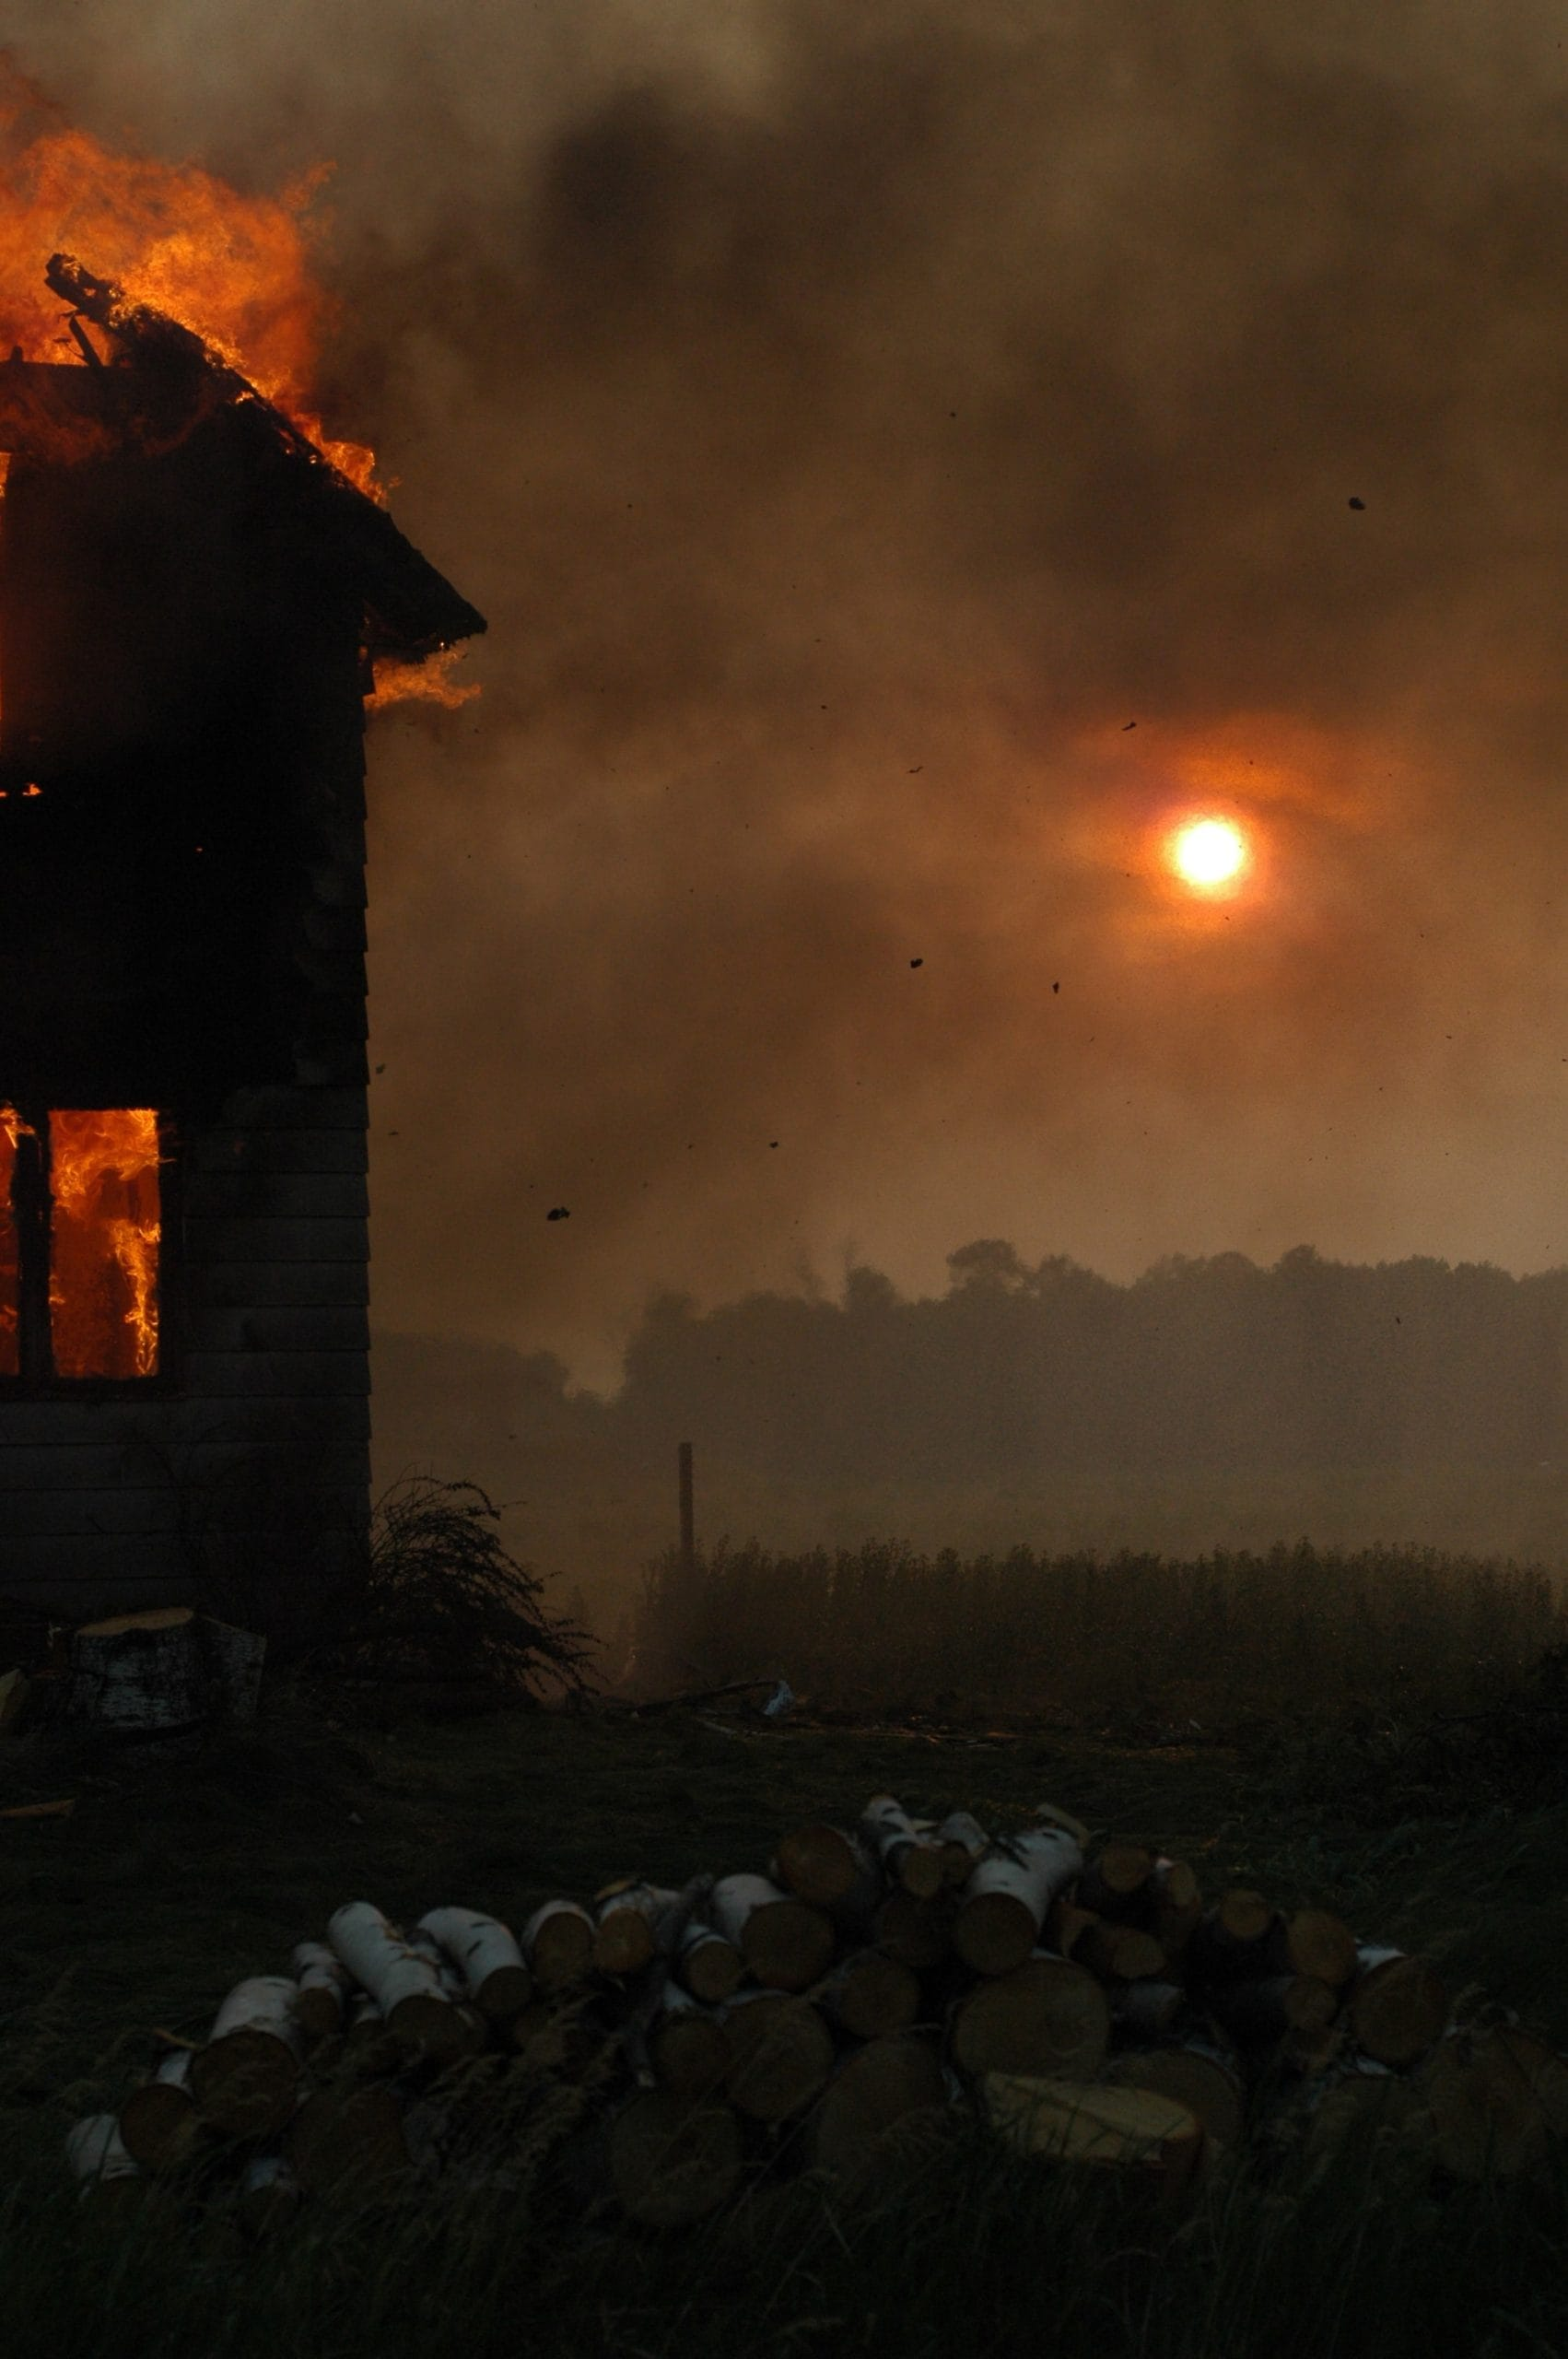 How Do You Deal With Household Disasters?